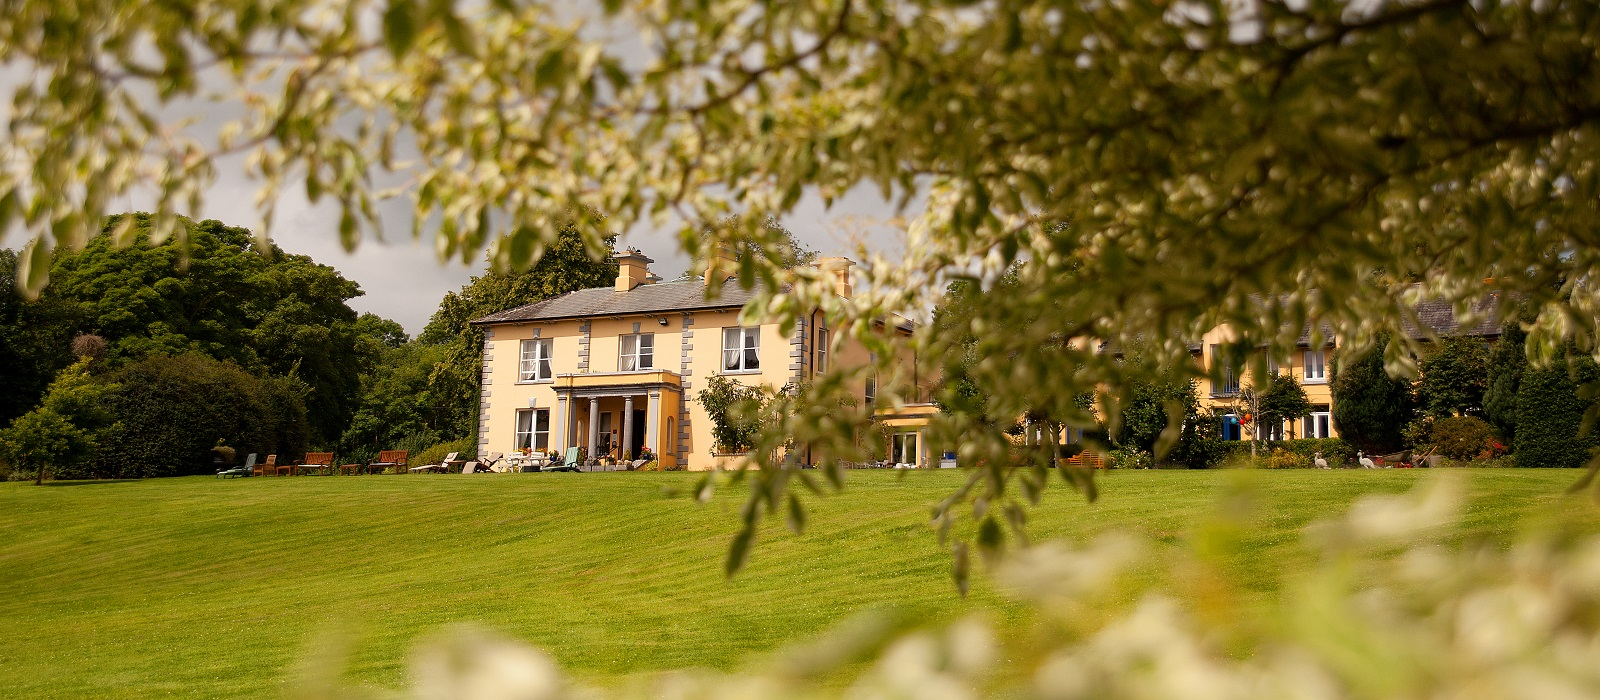 The Mustard Seed at Echo Lodge | Ballingarry |Limerick | Hilary Finlay